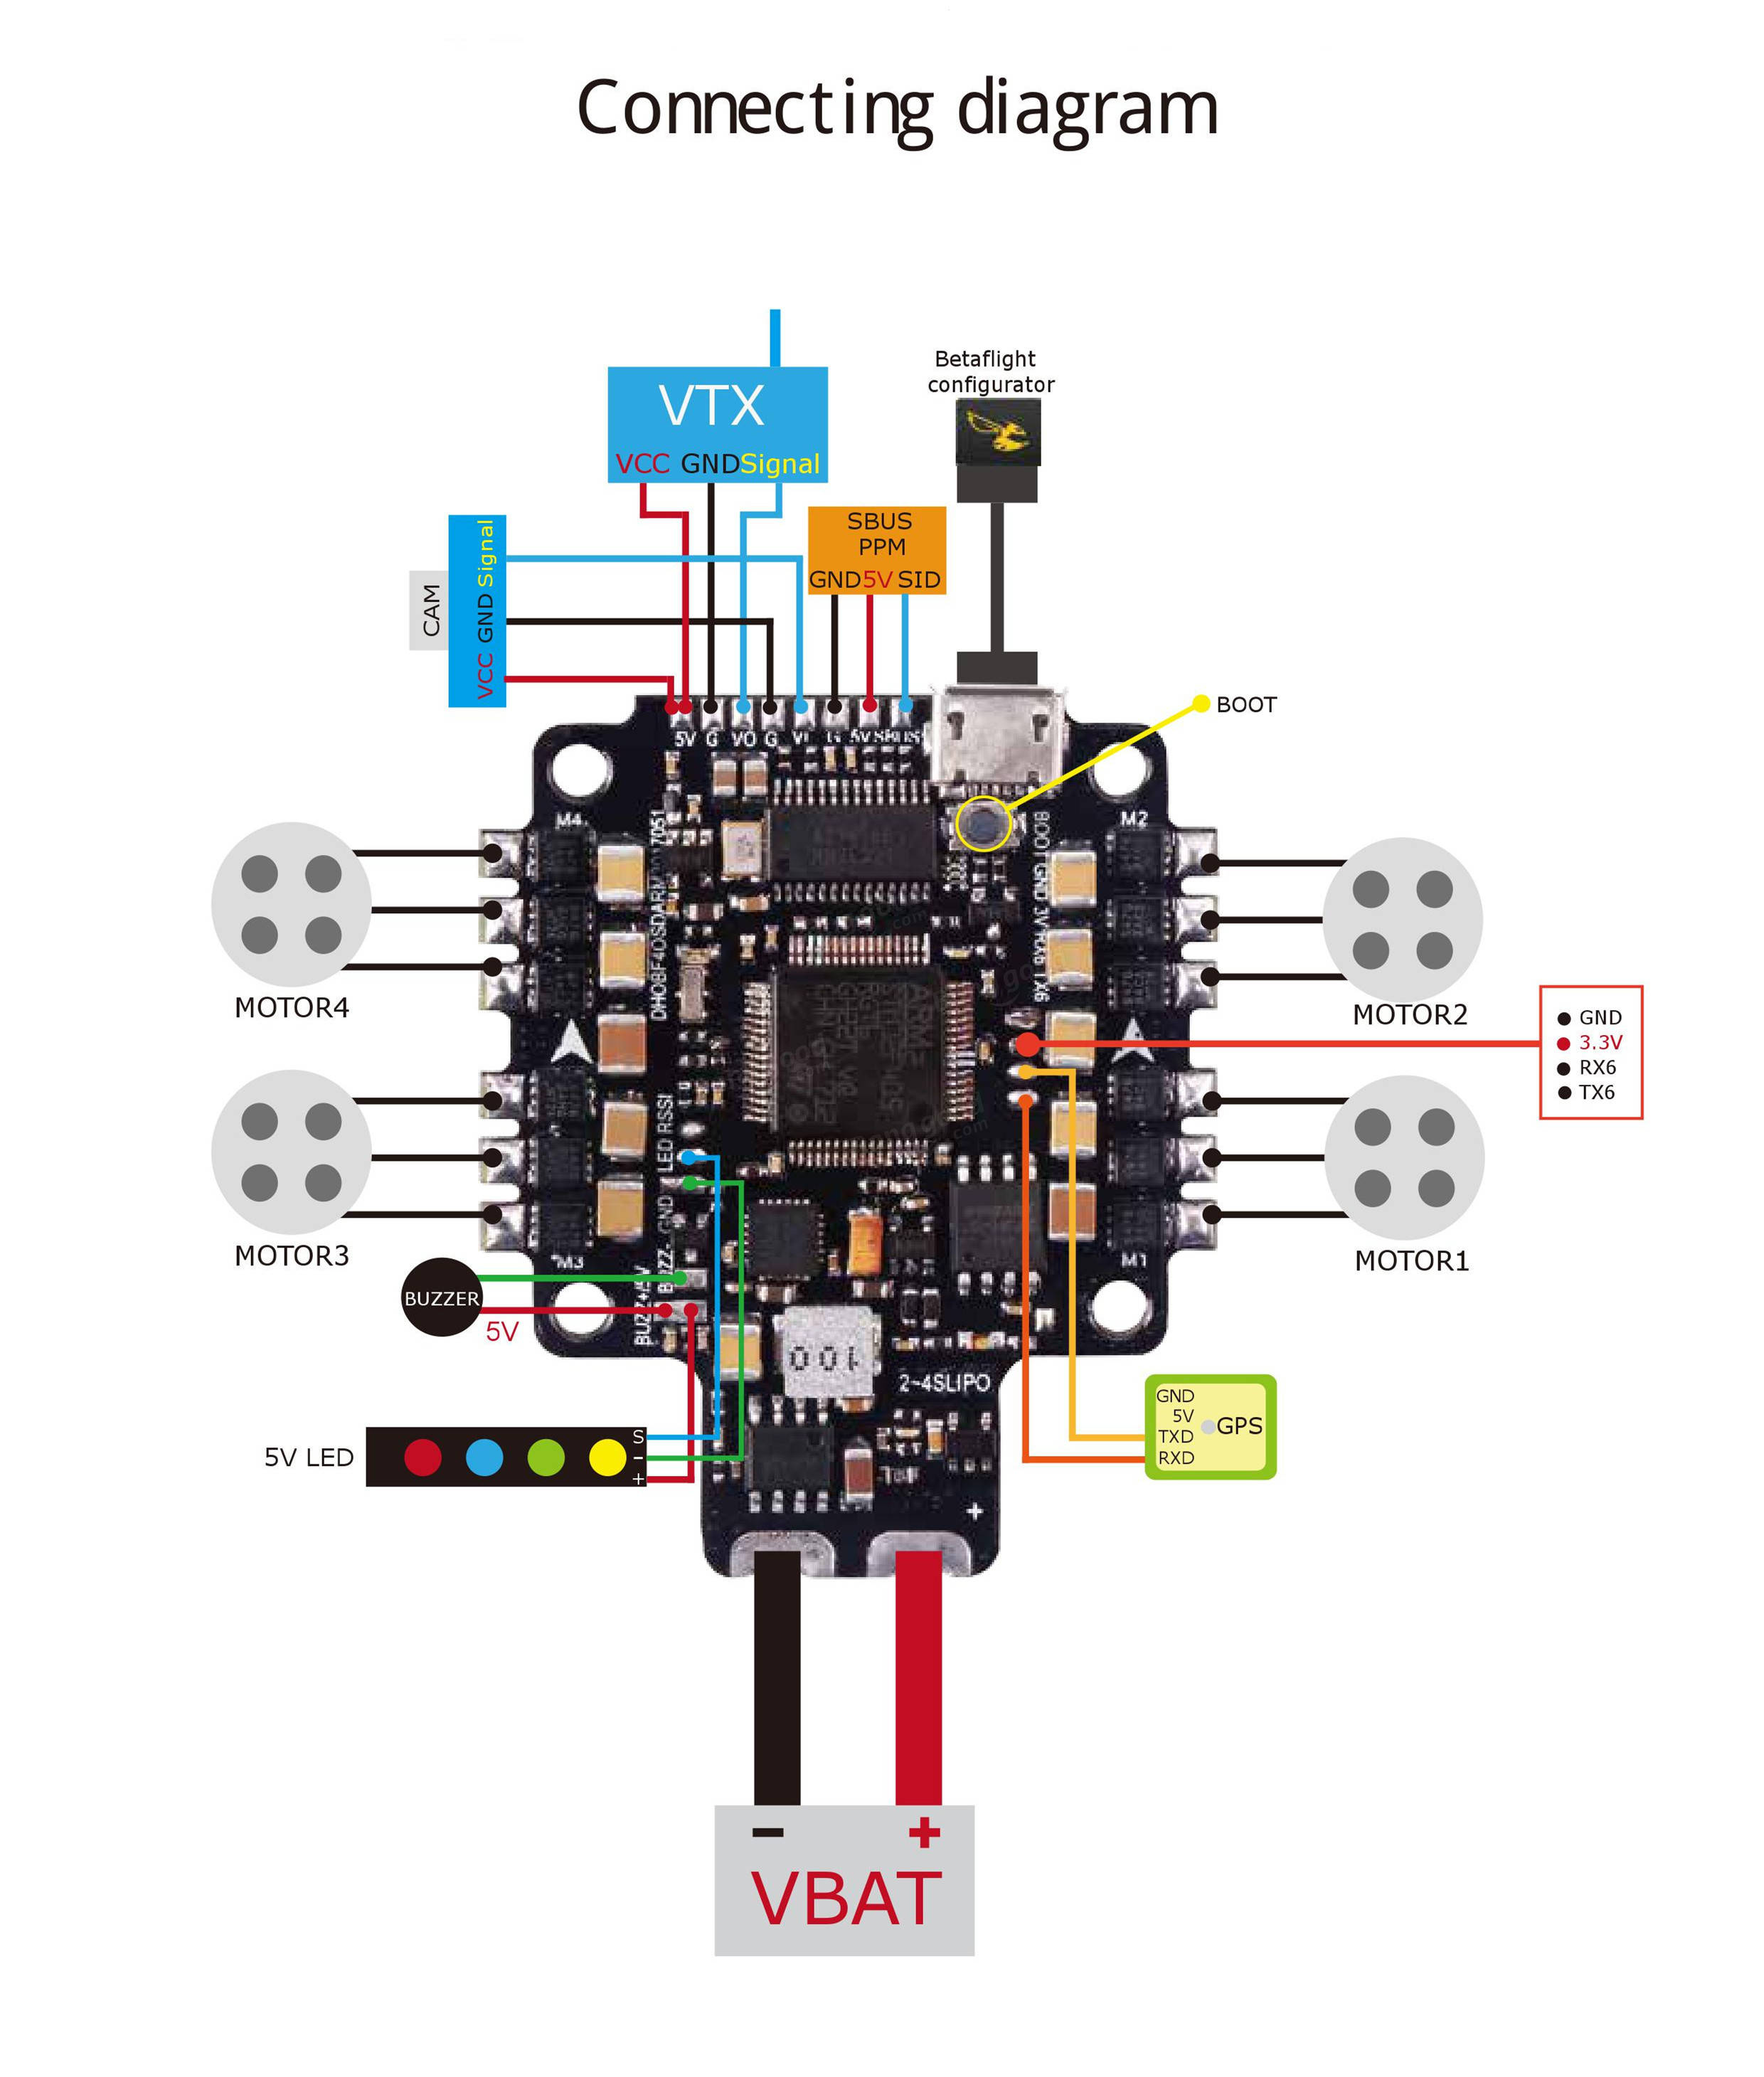 Lumenier Alpha Aio Flight Controller F4 Fc With Osd And 30a Cc3d Spektrum Wiring Diagram Have No User Manual Nor Know How To Connect Gps Rx6 Tx6 Buzzer An Leds Take A Look At The Connection That Works For All Of These Boards